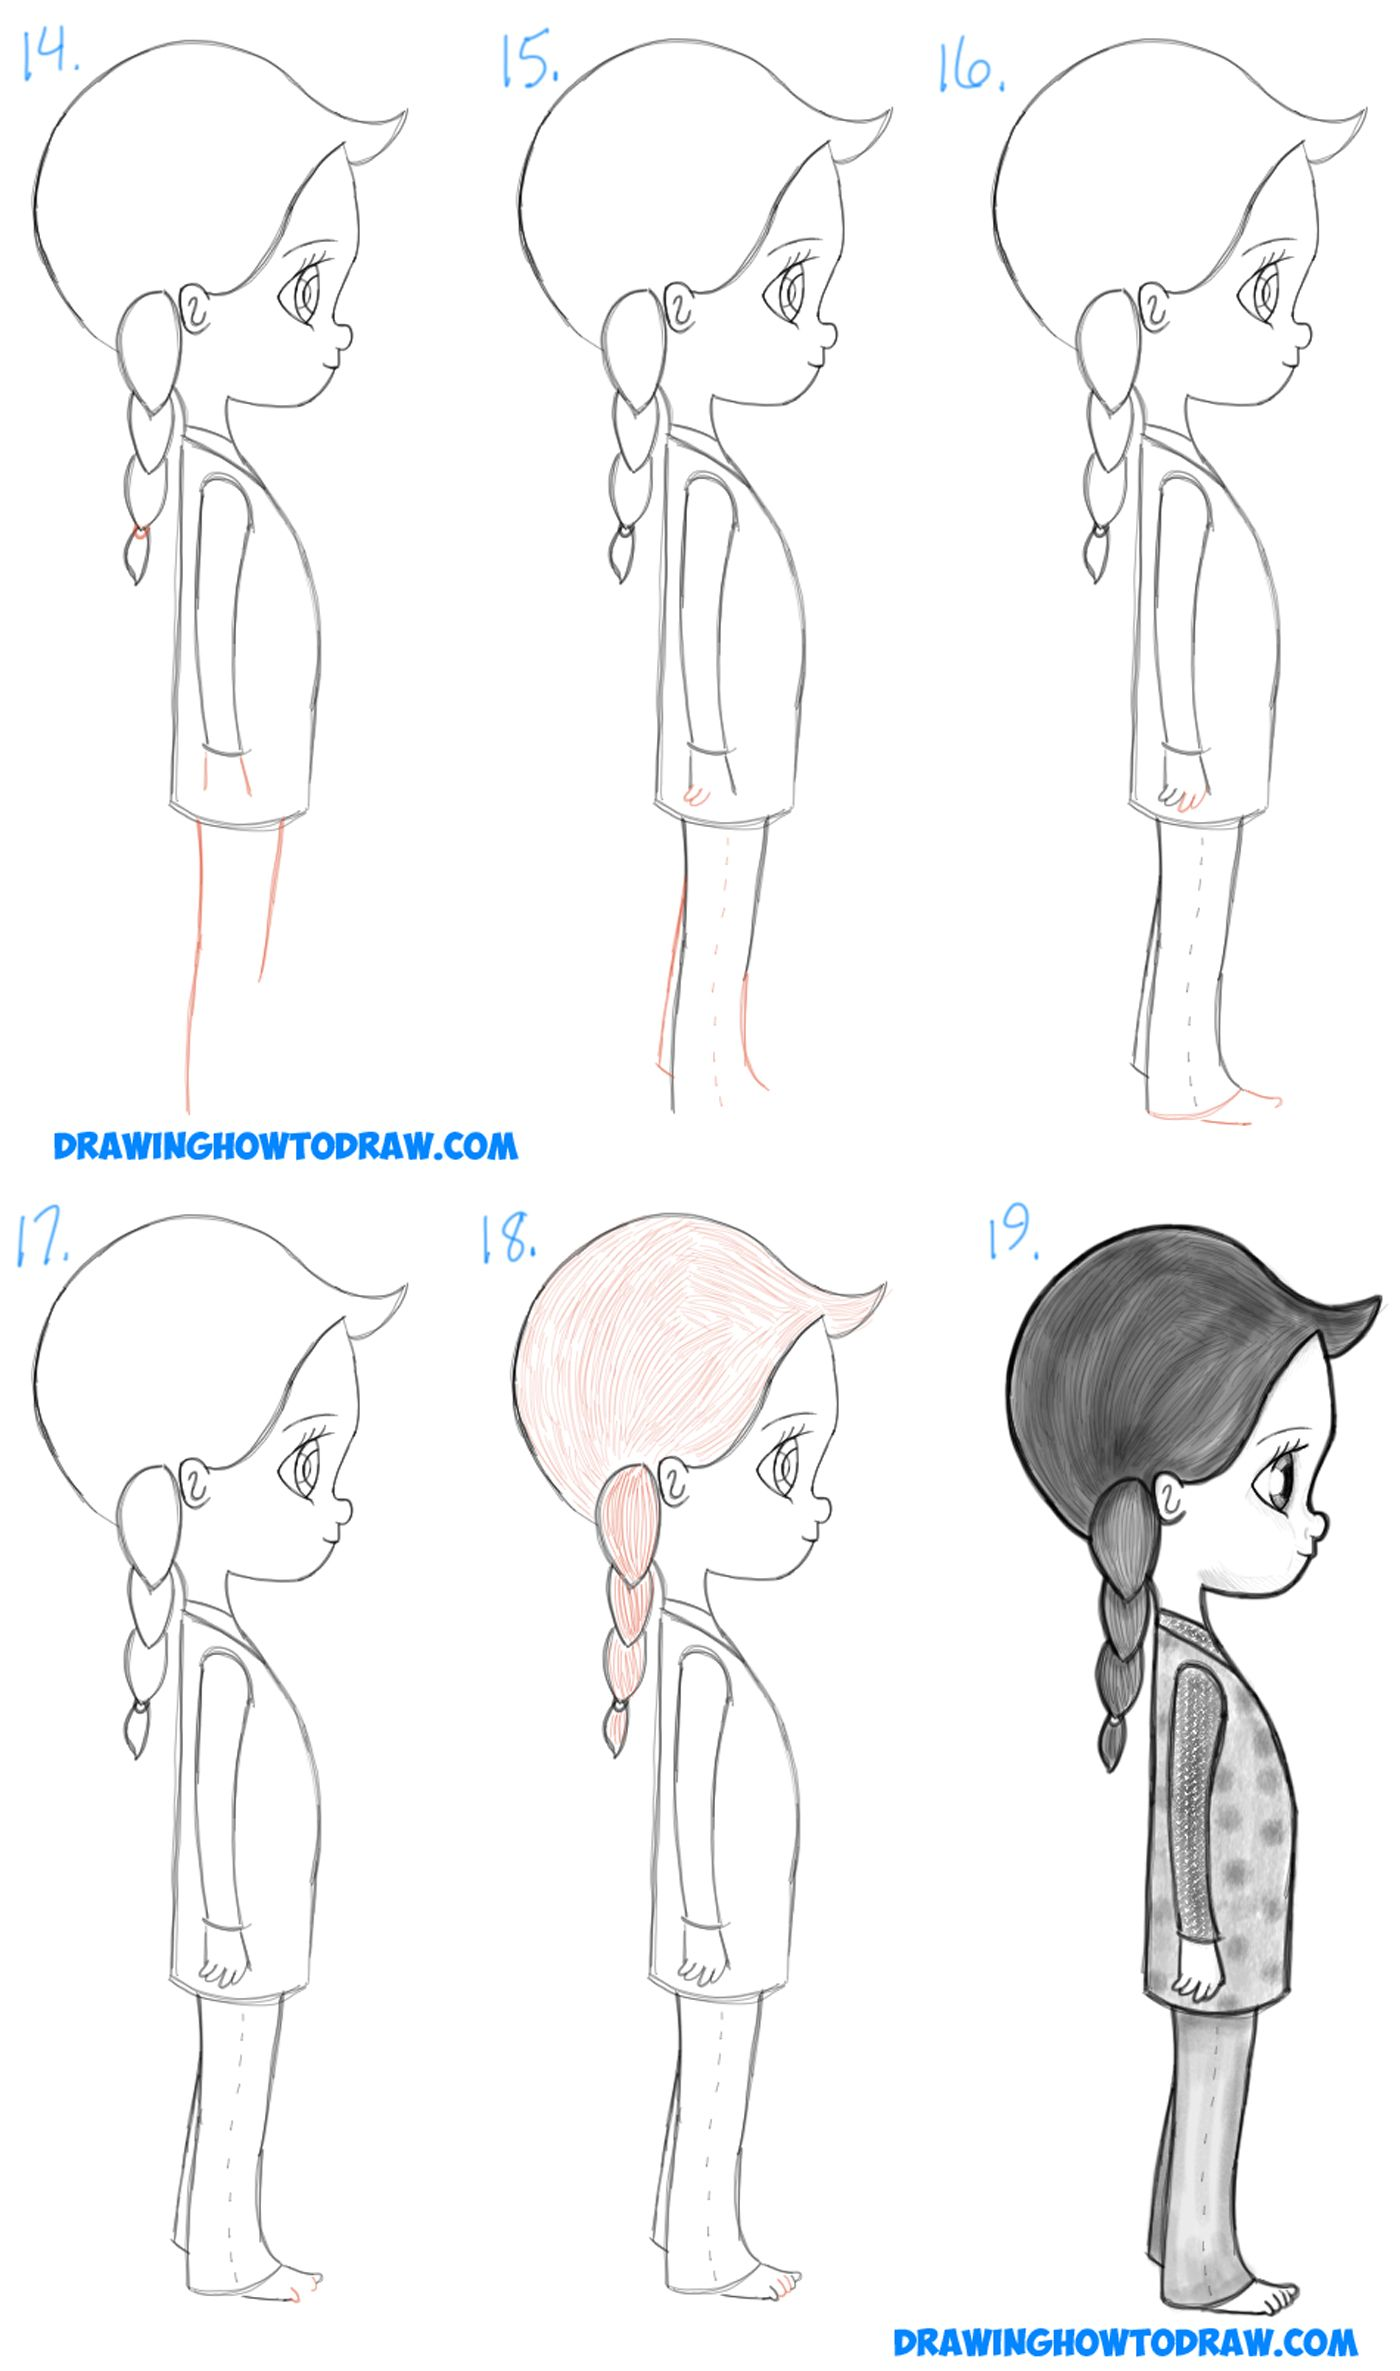 Uncategorized Anime Drawings For Kids how to draw a cute chibi manga anime girl from the side view easy step by drawing tutorial for kids beginners to